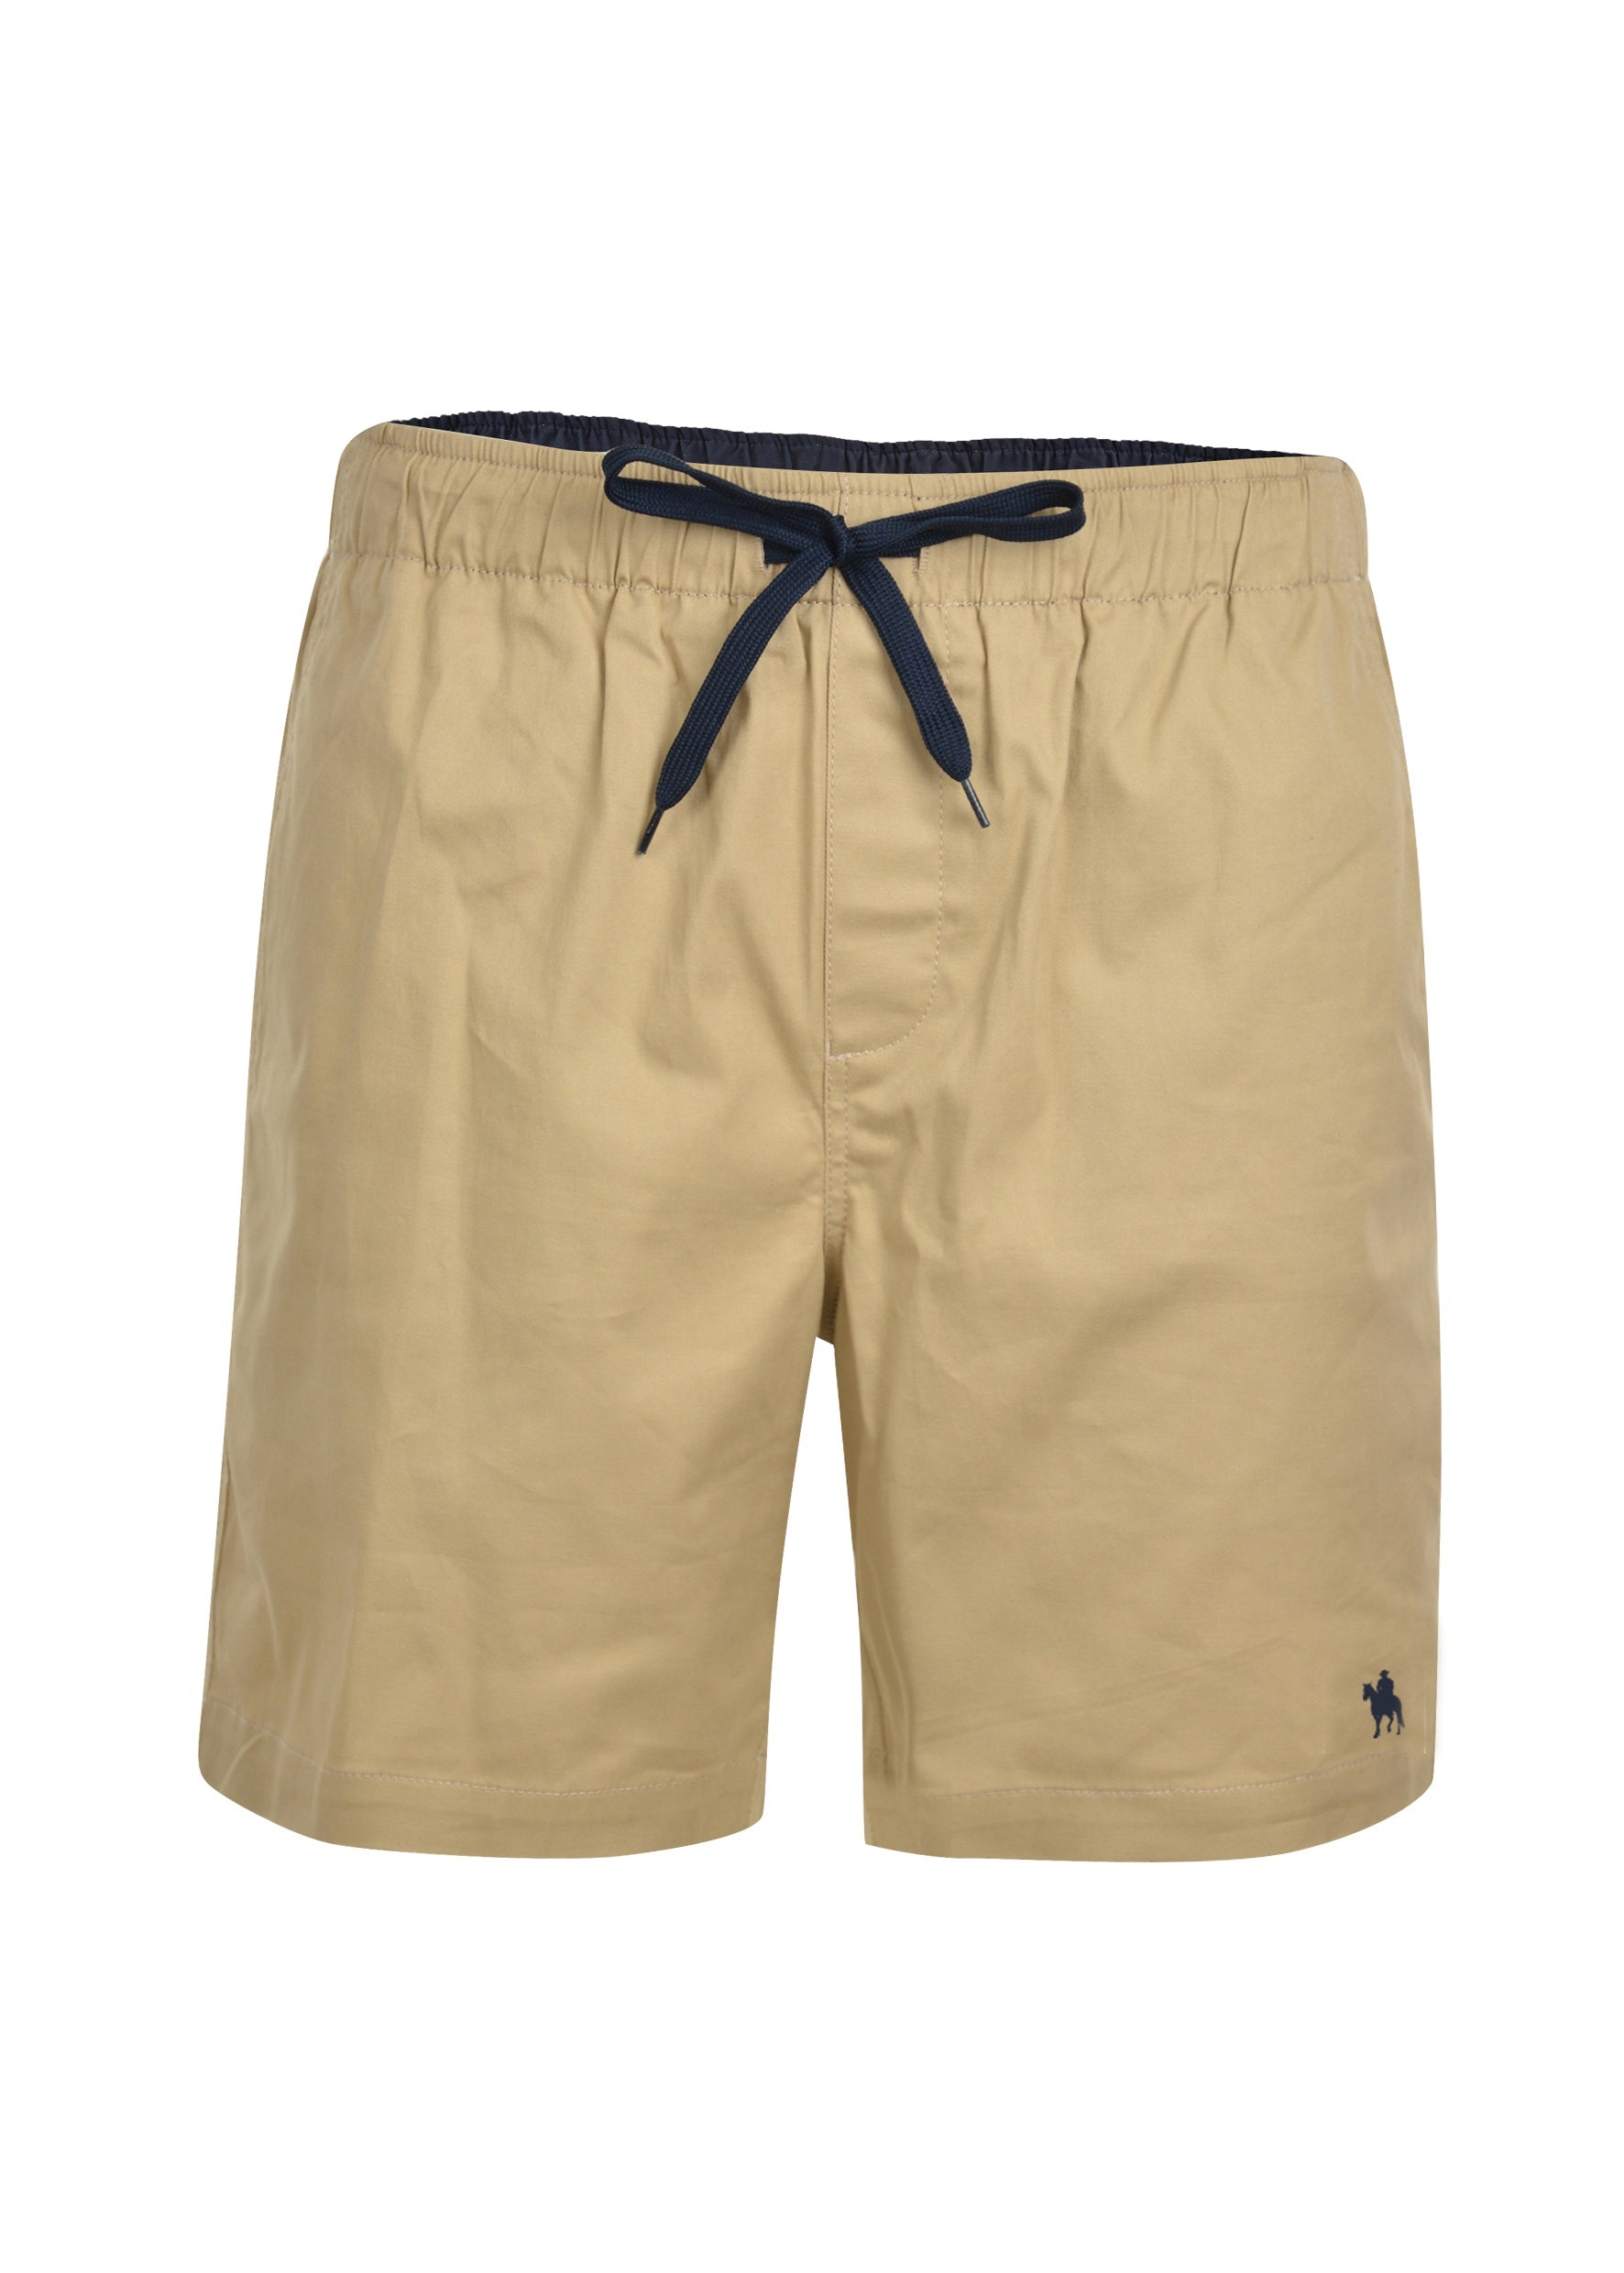 Mens Darcy Shorts (Sand) (Sand)